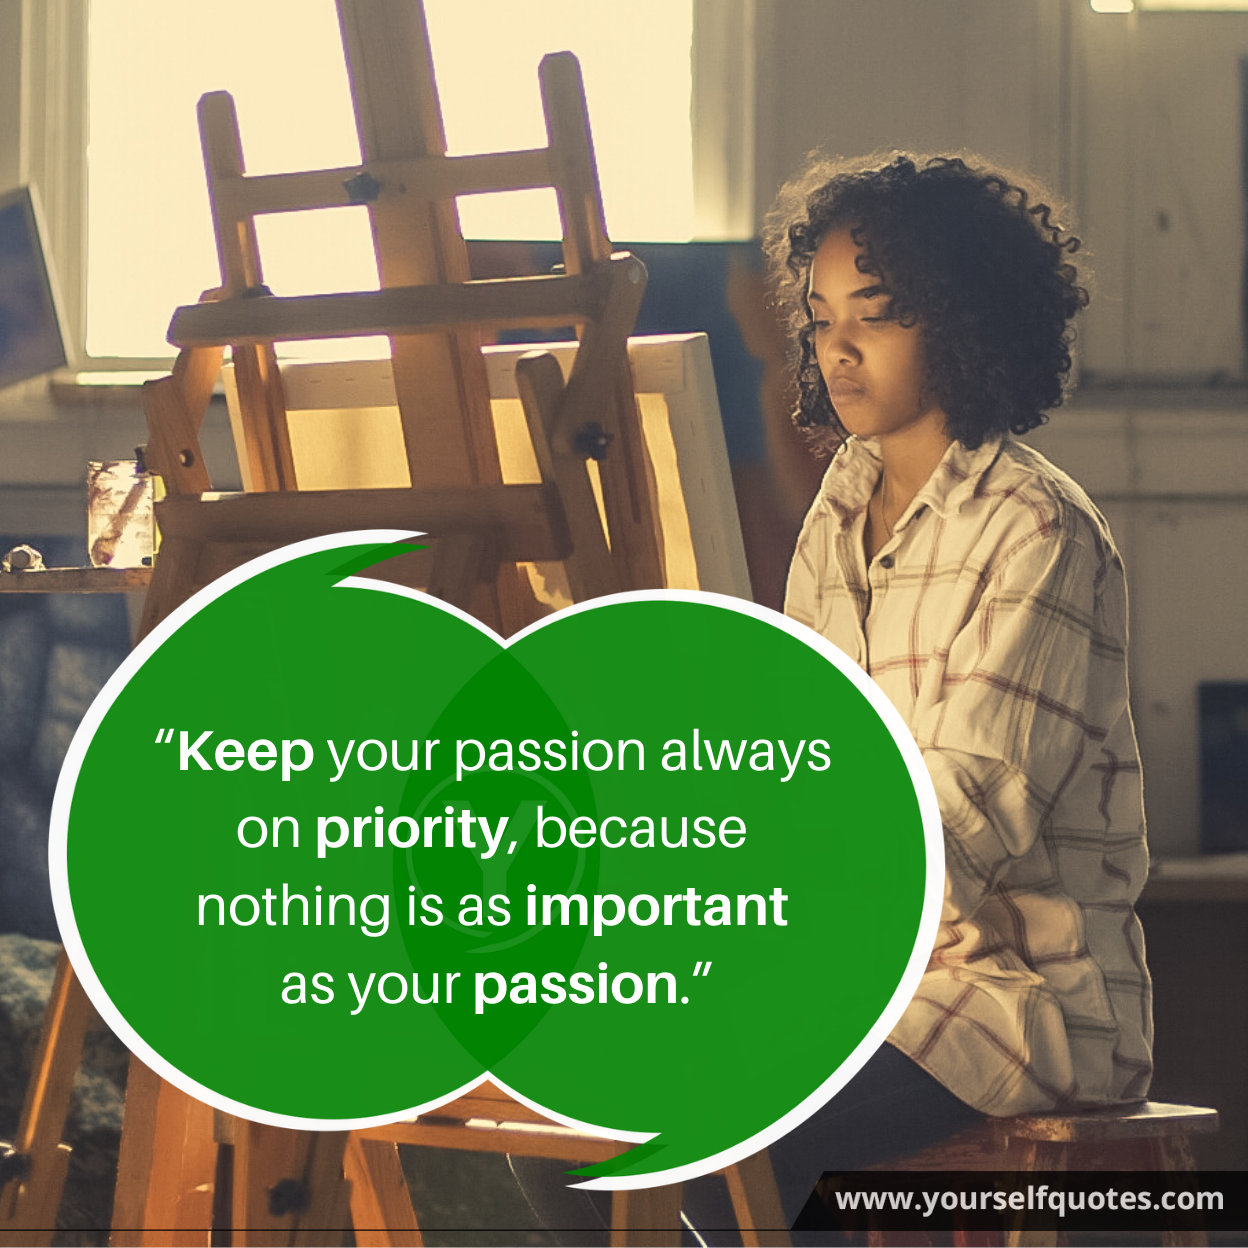 Quotes on Passion Images